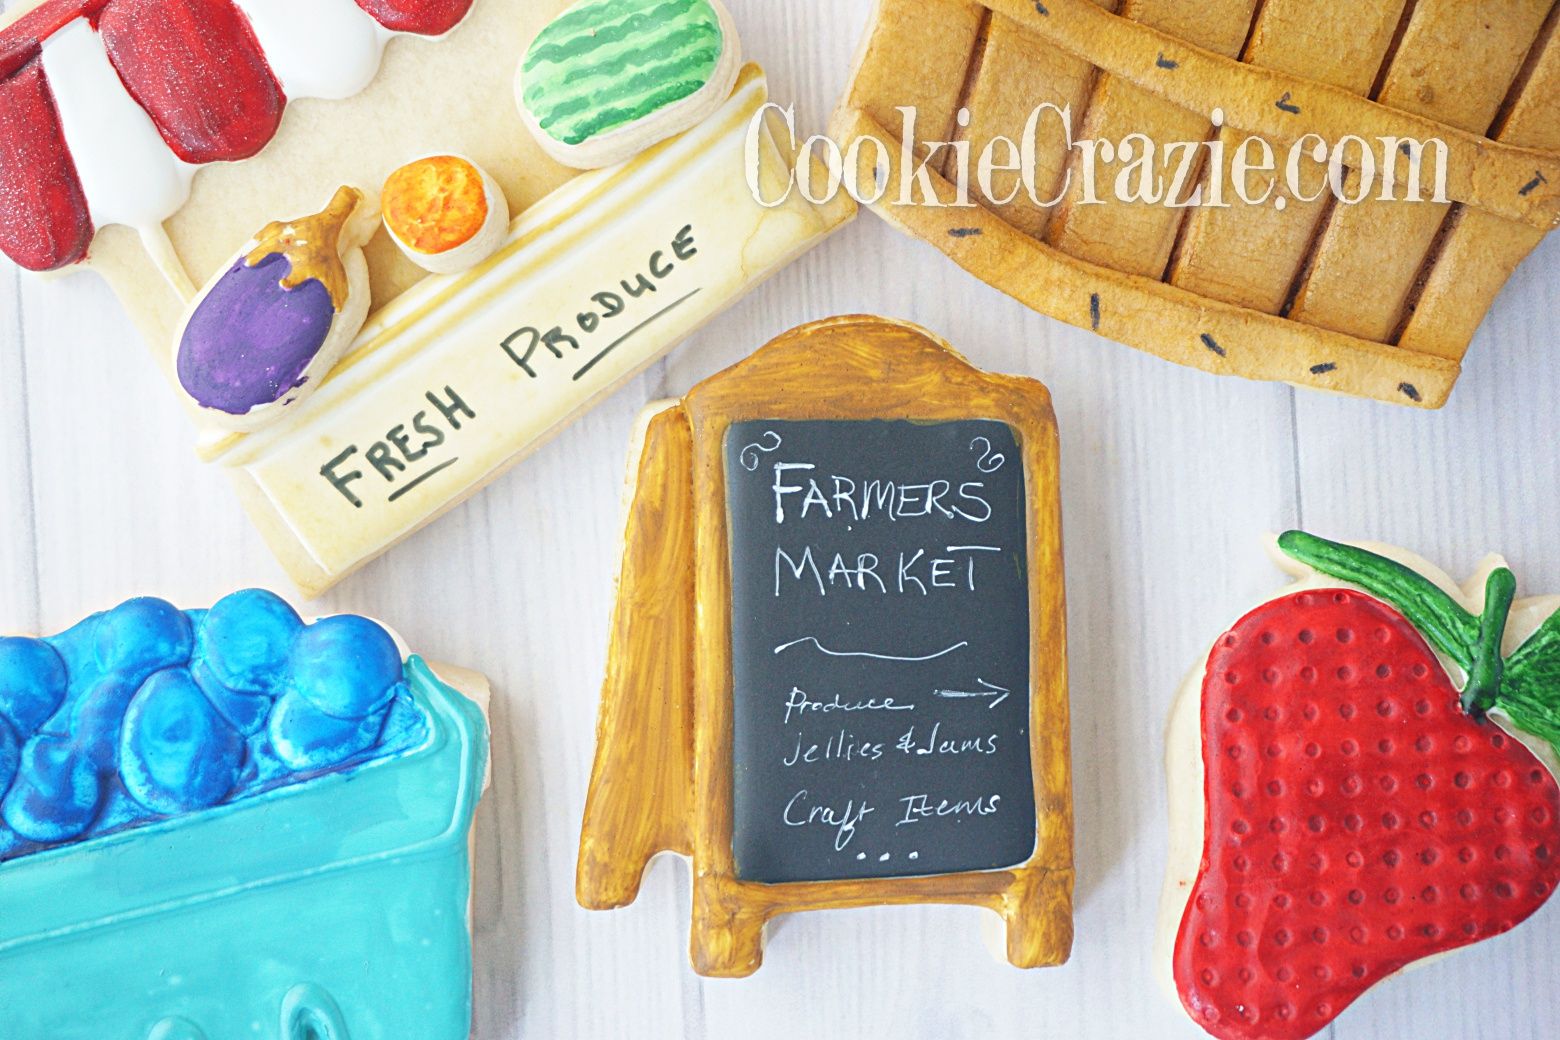 Farmers Market Bi-Fold Sign Decorated Sugar Cookie YouTube video  HERE